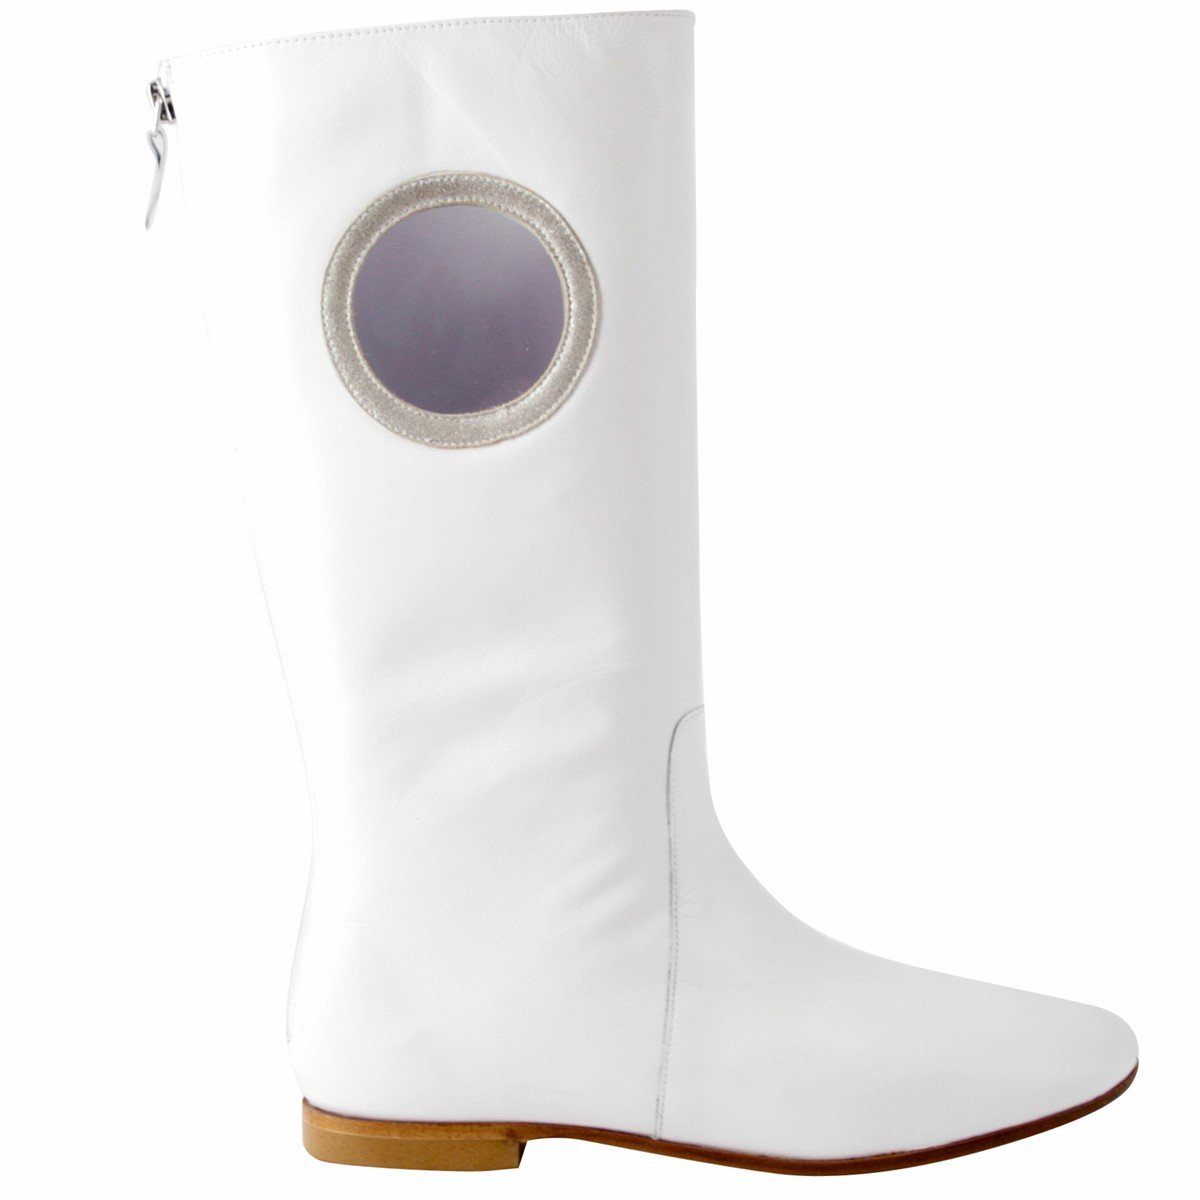 Exclusif Paris Bottes 10459 Molly Bottes Paris Blanc 24b27f7 - fast-weightloss-diet.space